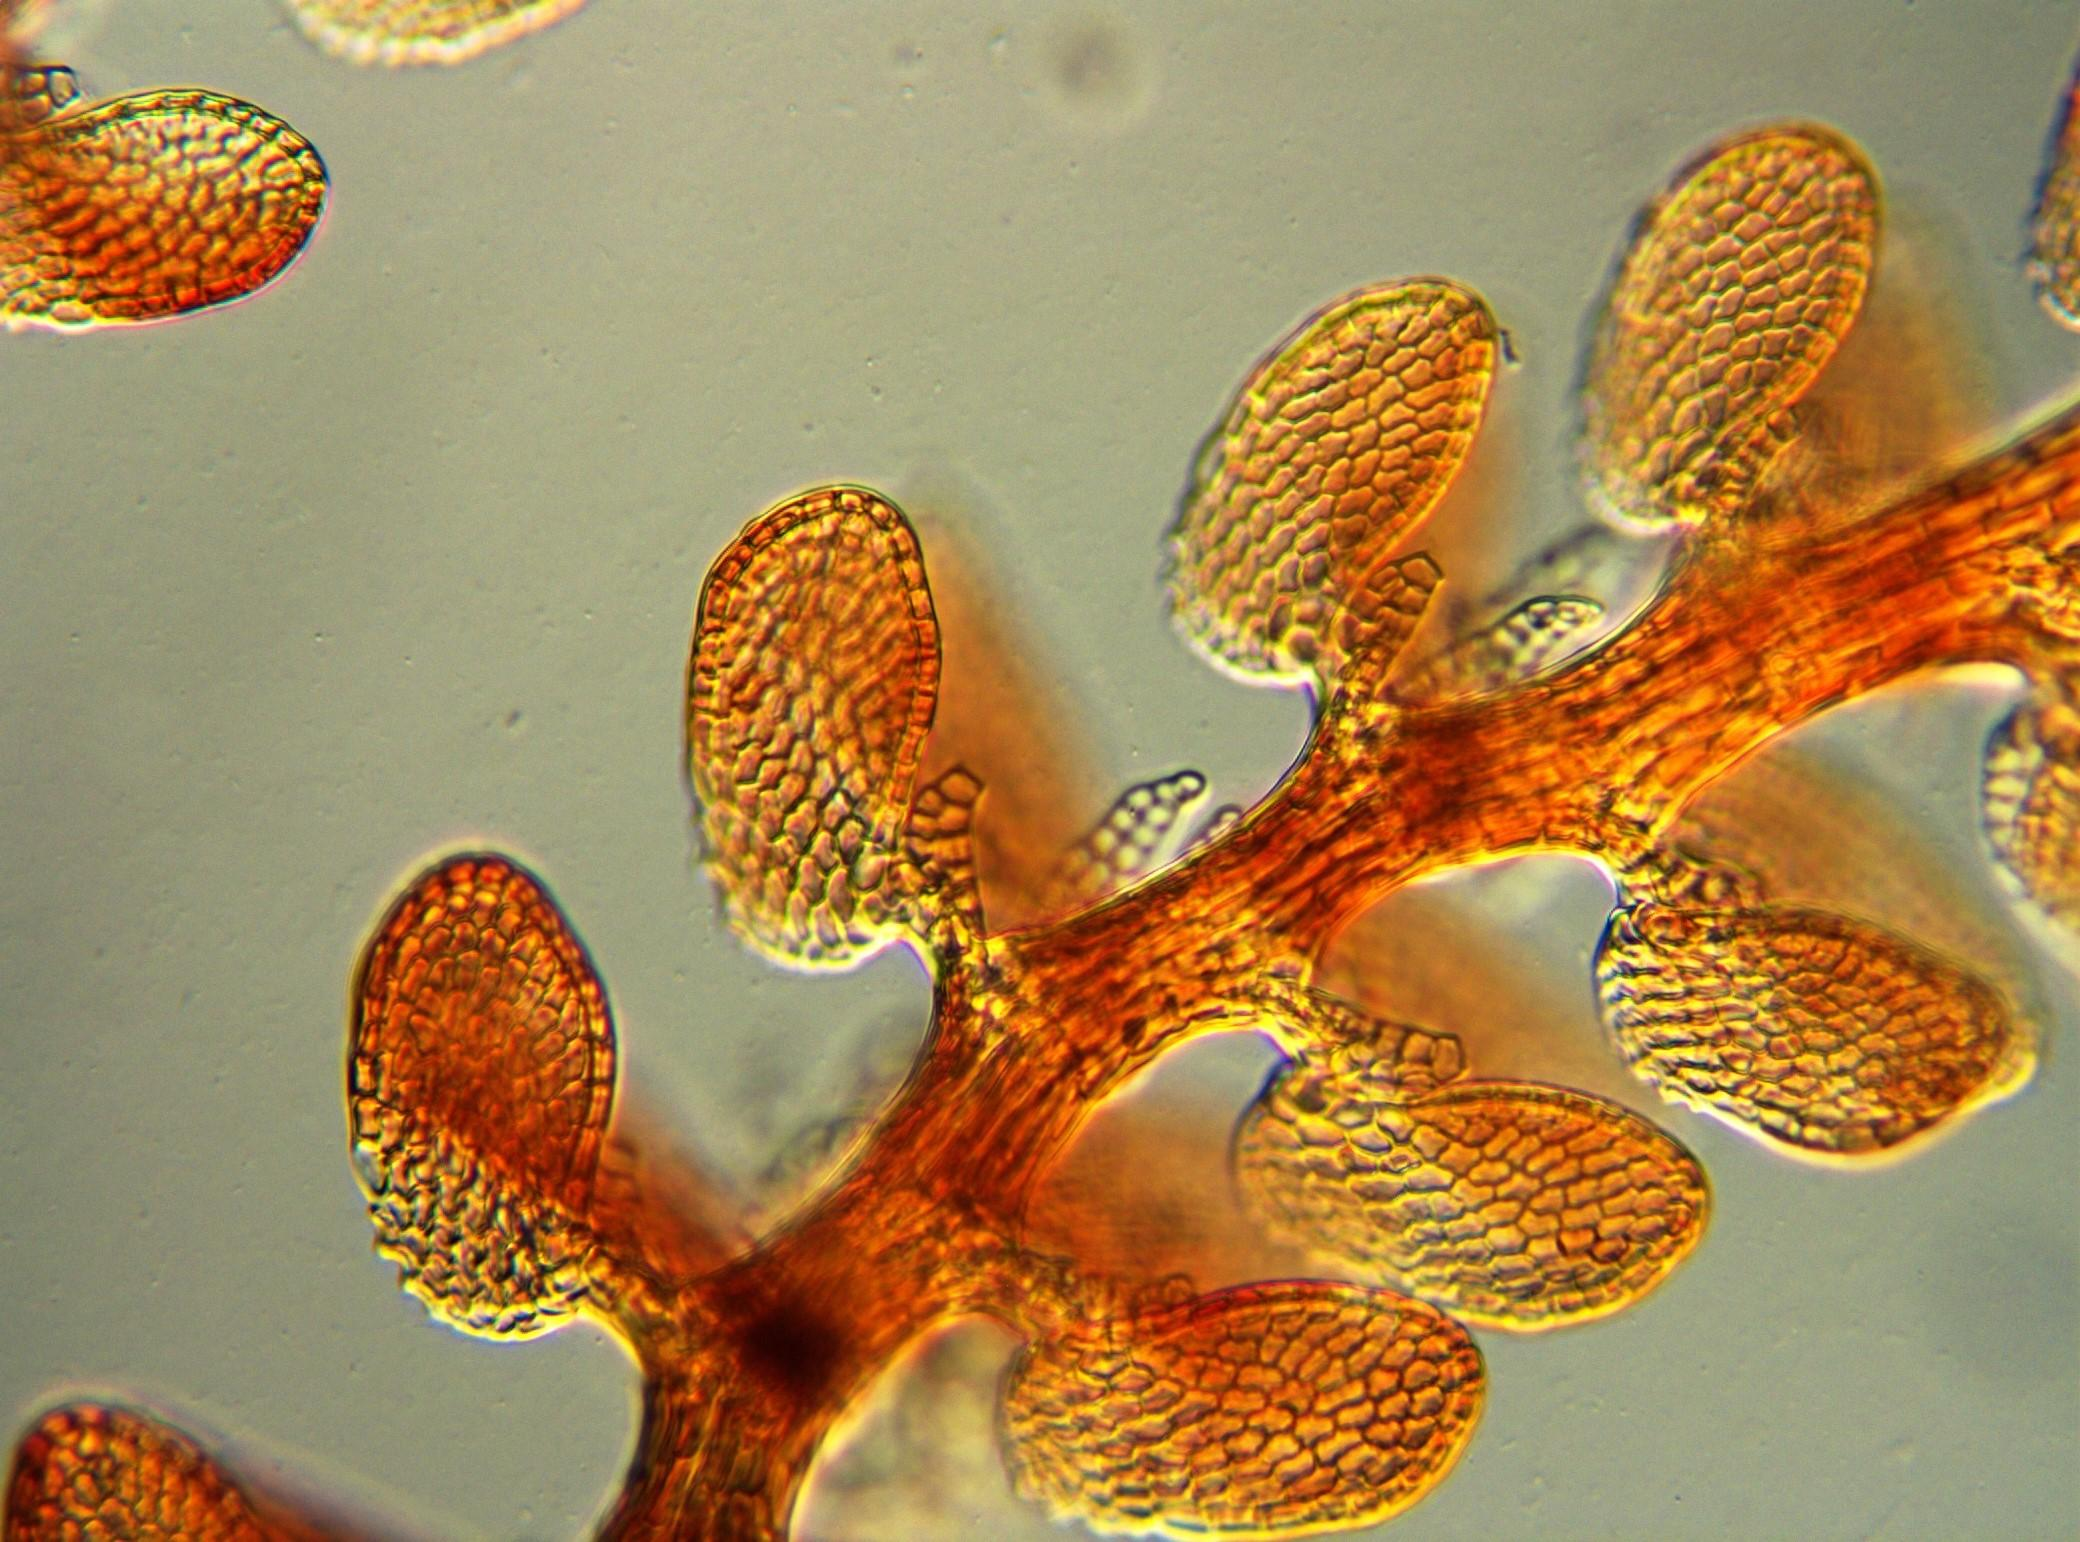 Citizen scientists examined digital images of liverwort plants as part of a Field Museum-led study. (Courtesy Field Museum)